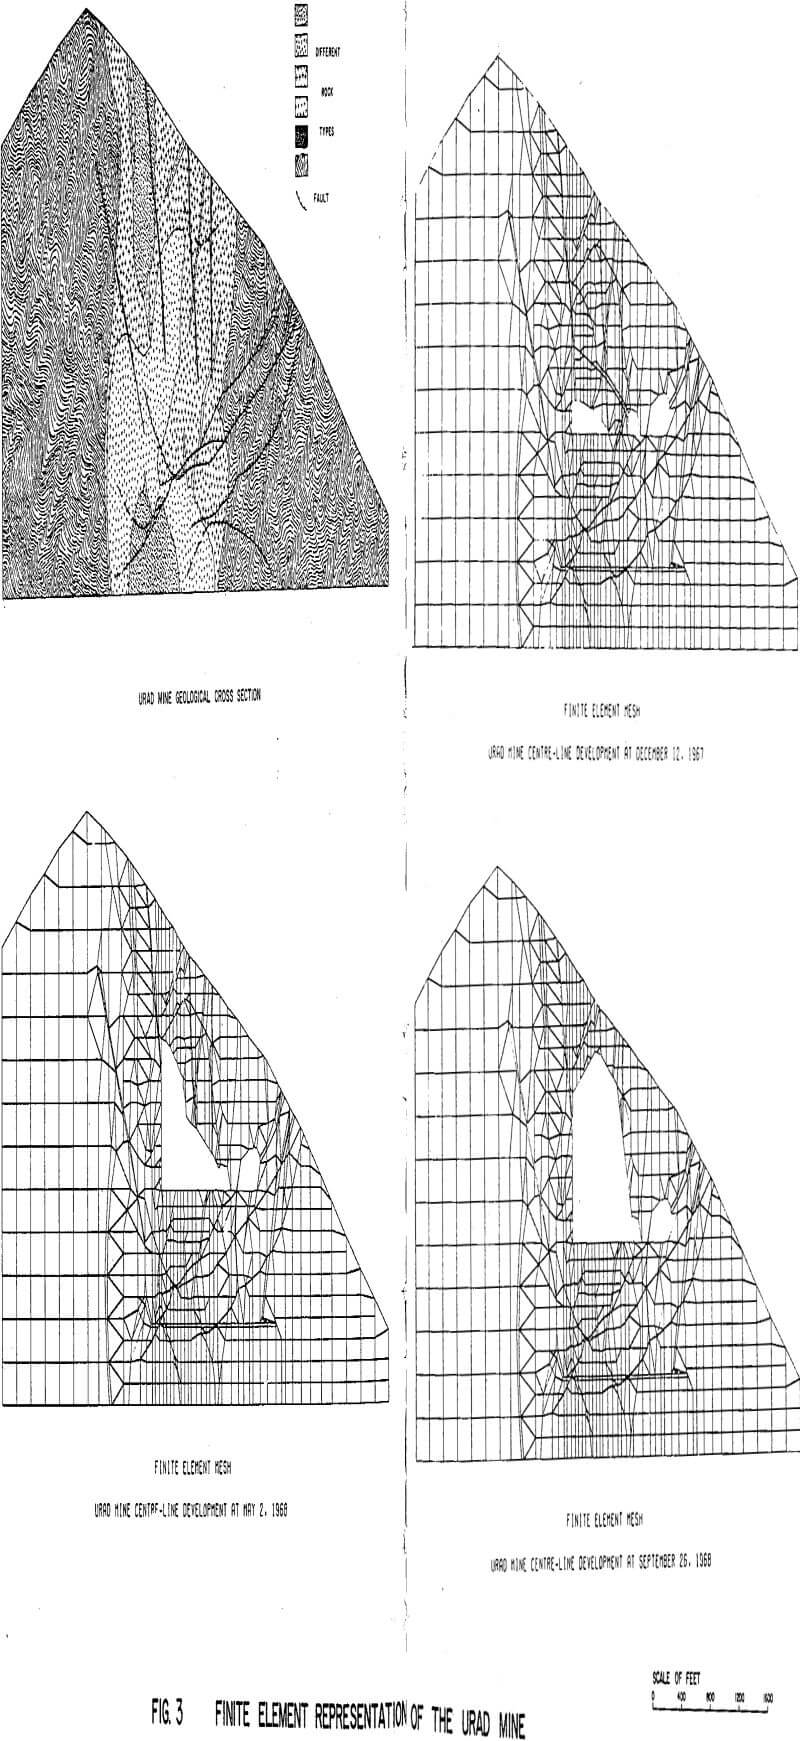 block caving finite element